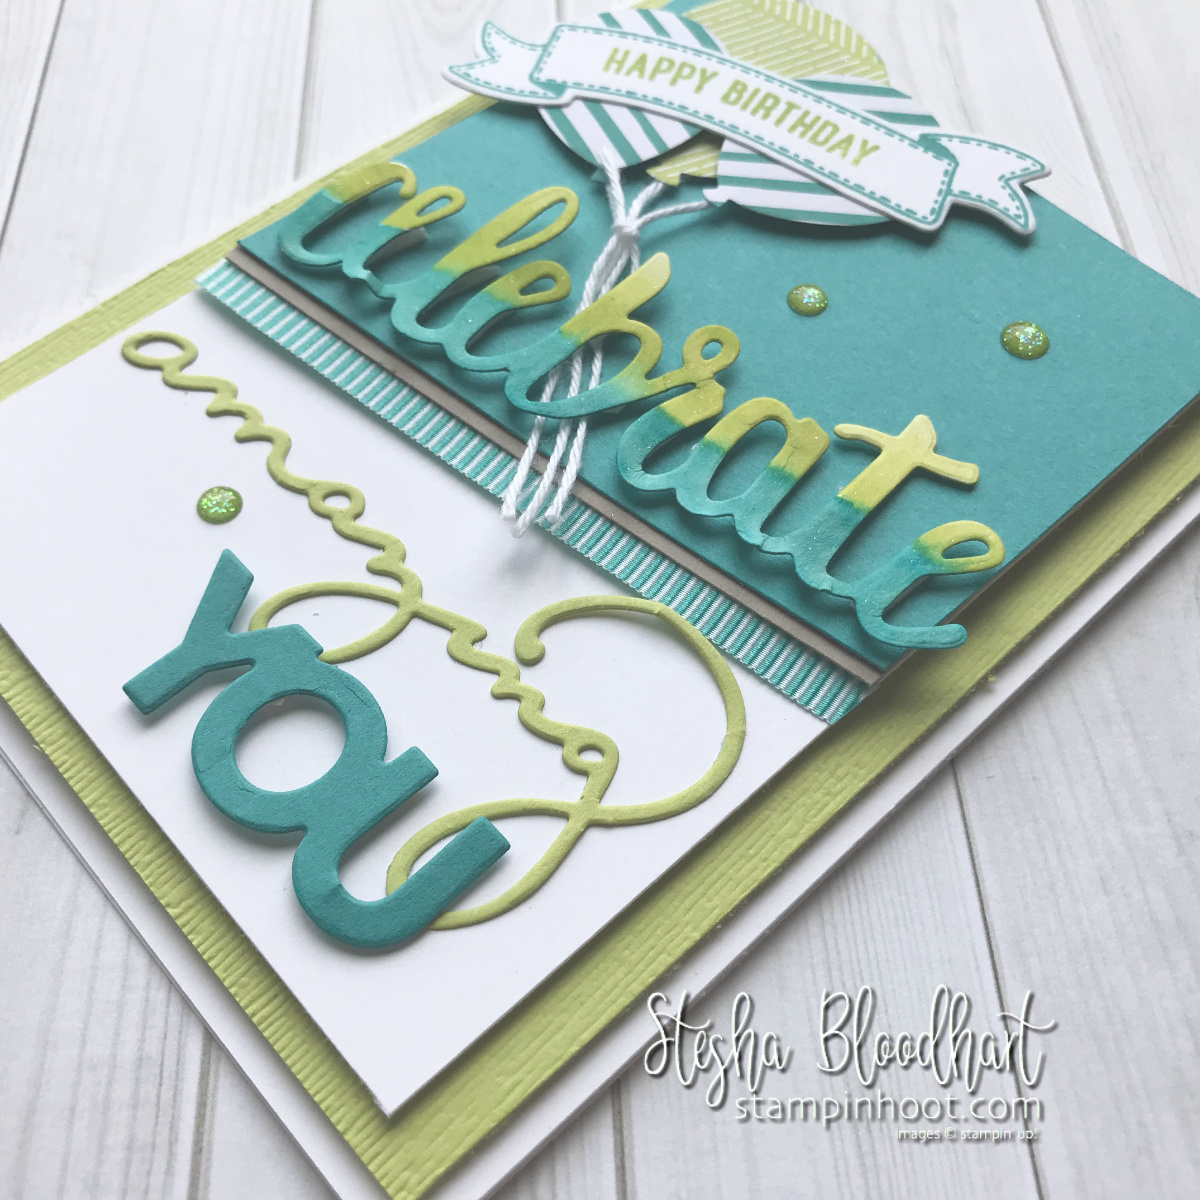 Celebrate You Thinlits Dies by Stampin' Up! Happy Birthday Card by Stesha Bloodhart, Stampin' Hoot! #steshabloodhart #stampinhoot